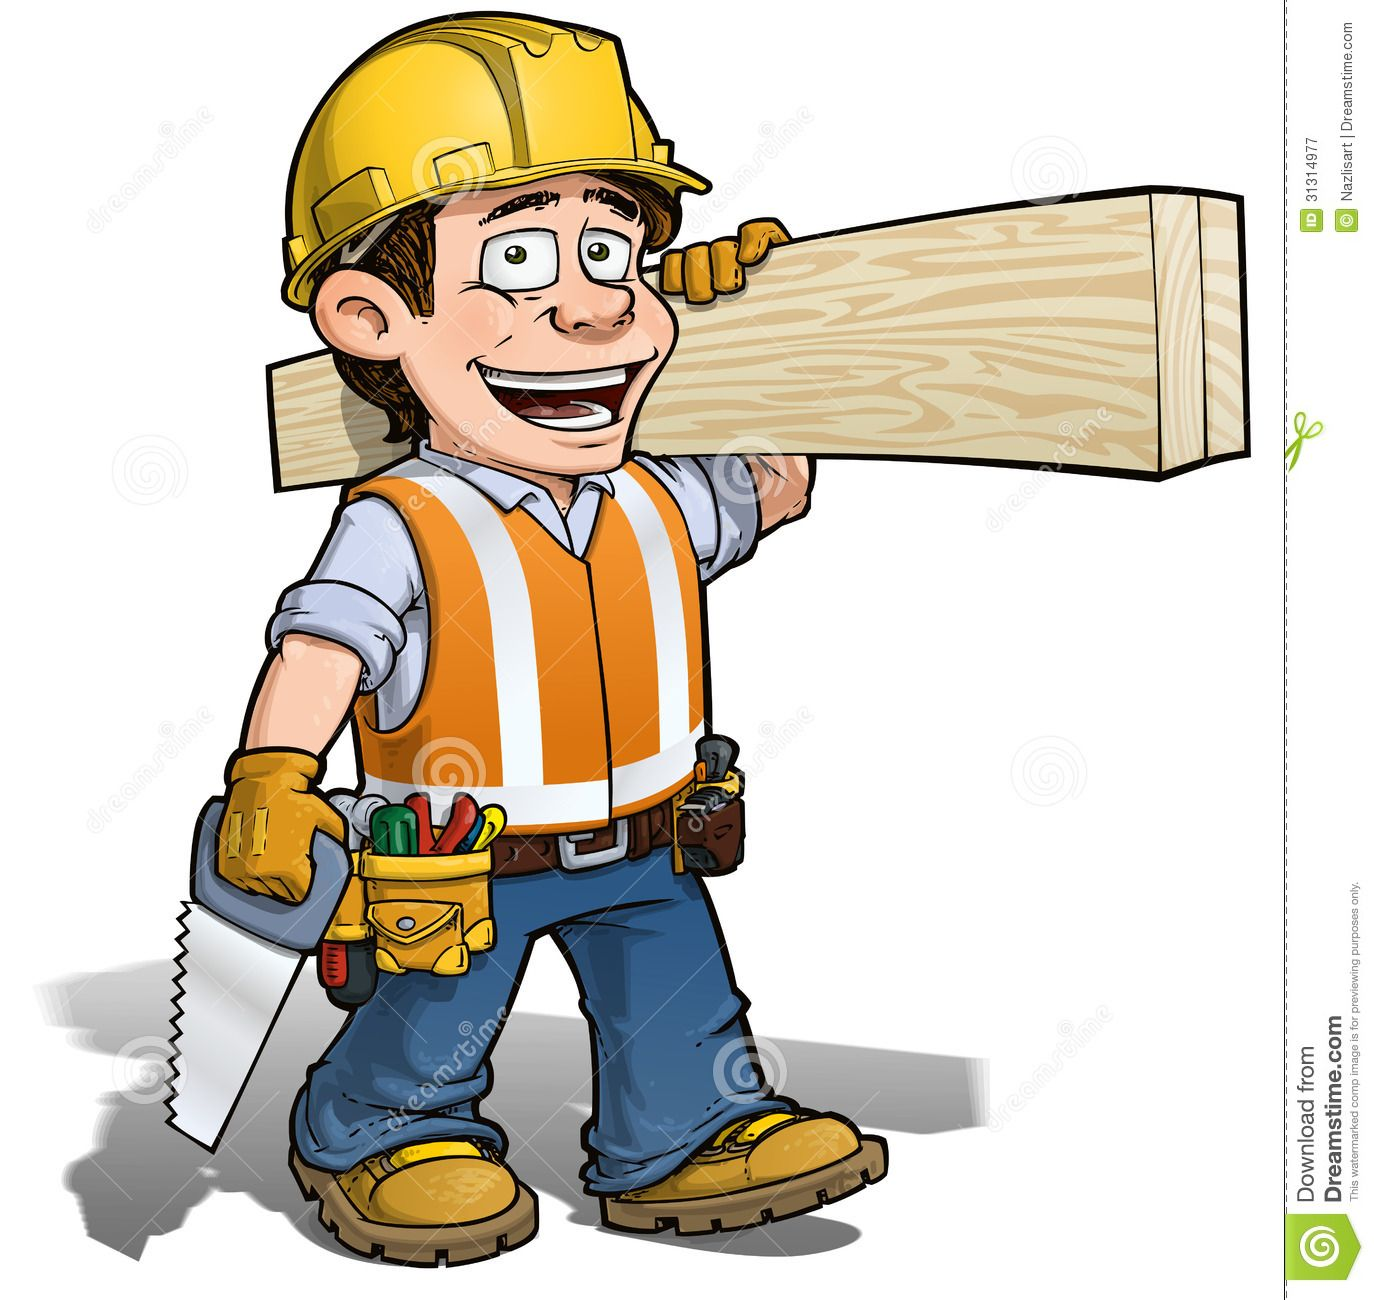 Contractor on phone clipart jpg black and white Carpenter clipart contractor - 16 transparent clip arts, images and ... jpg black and white